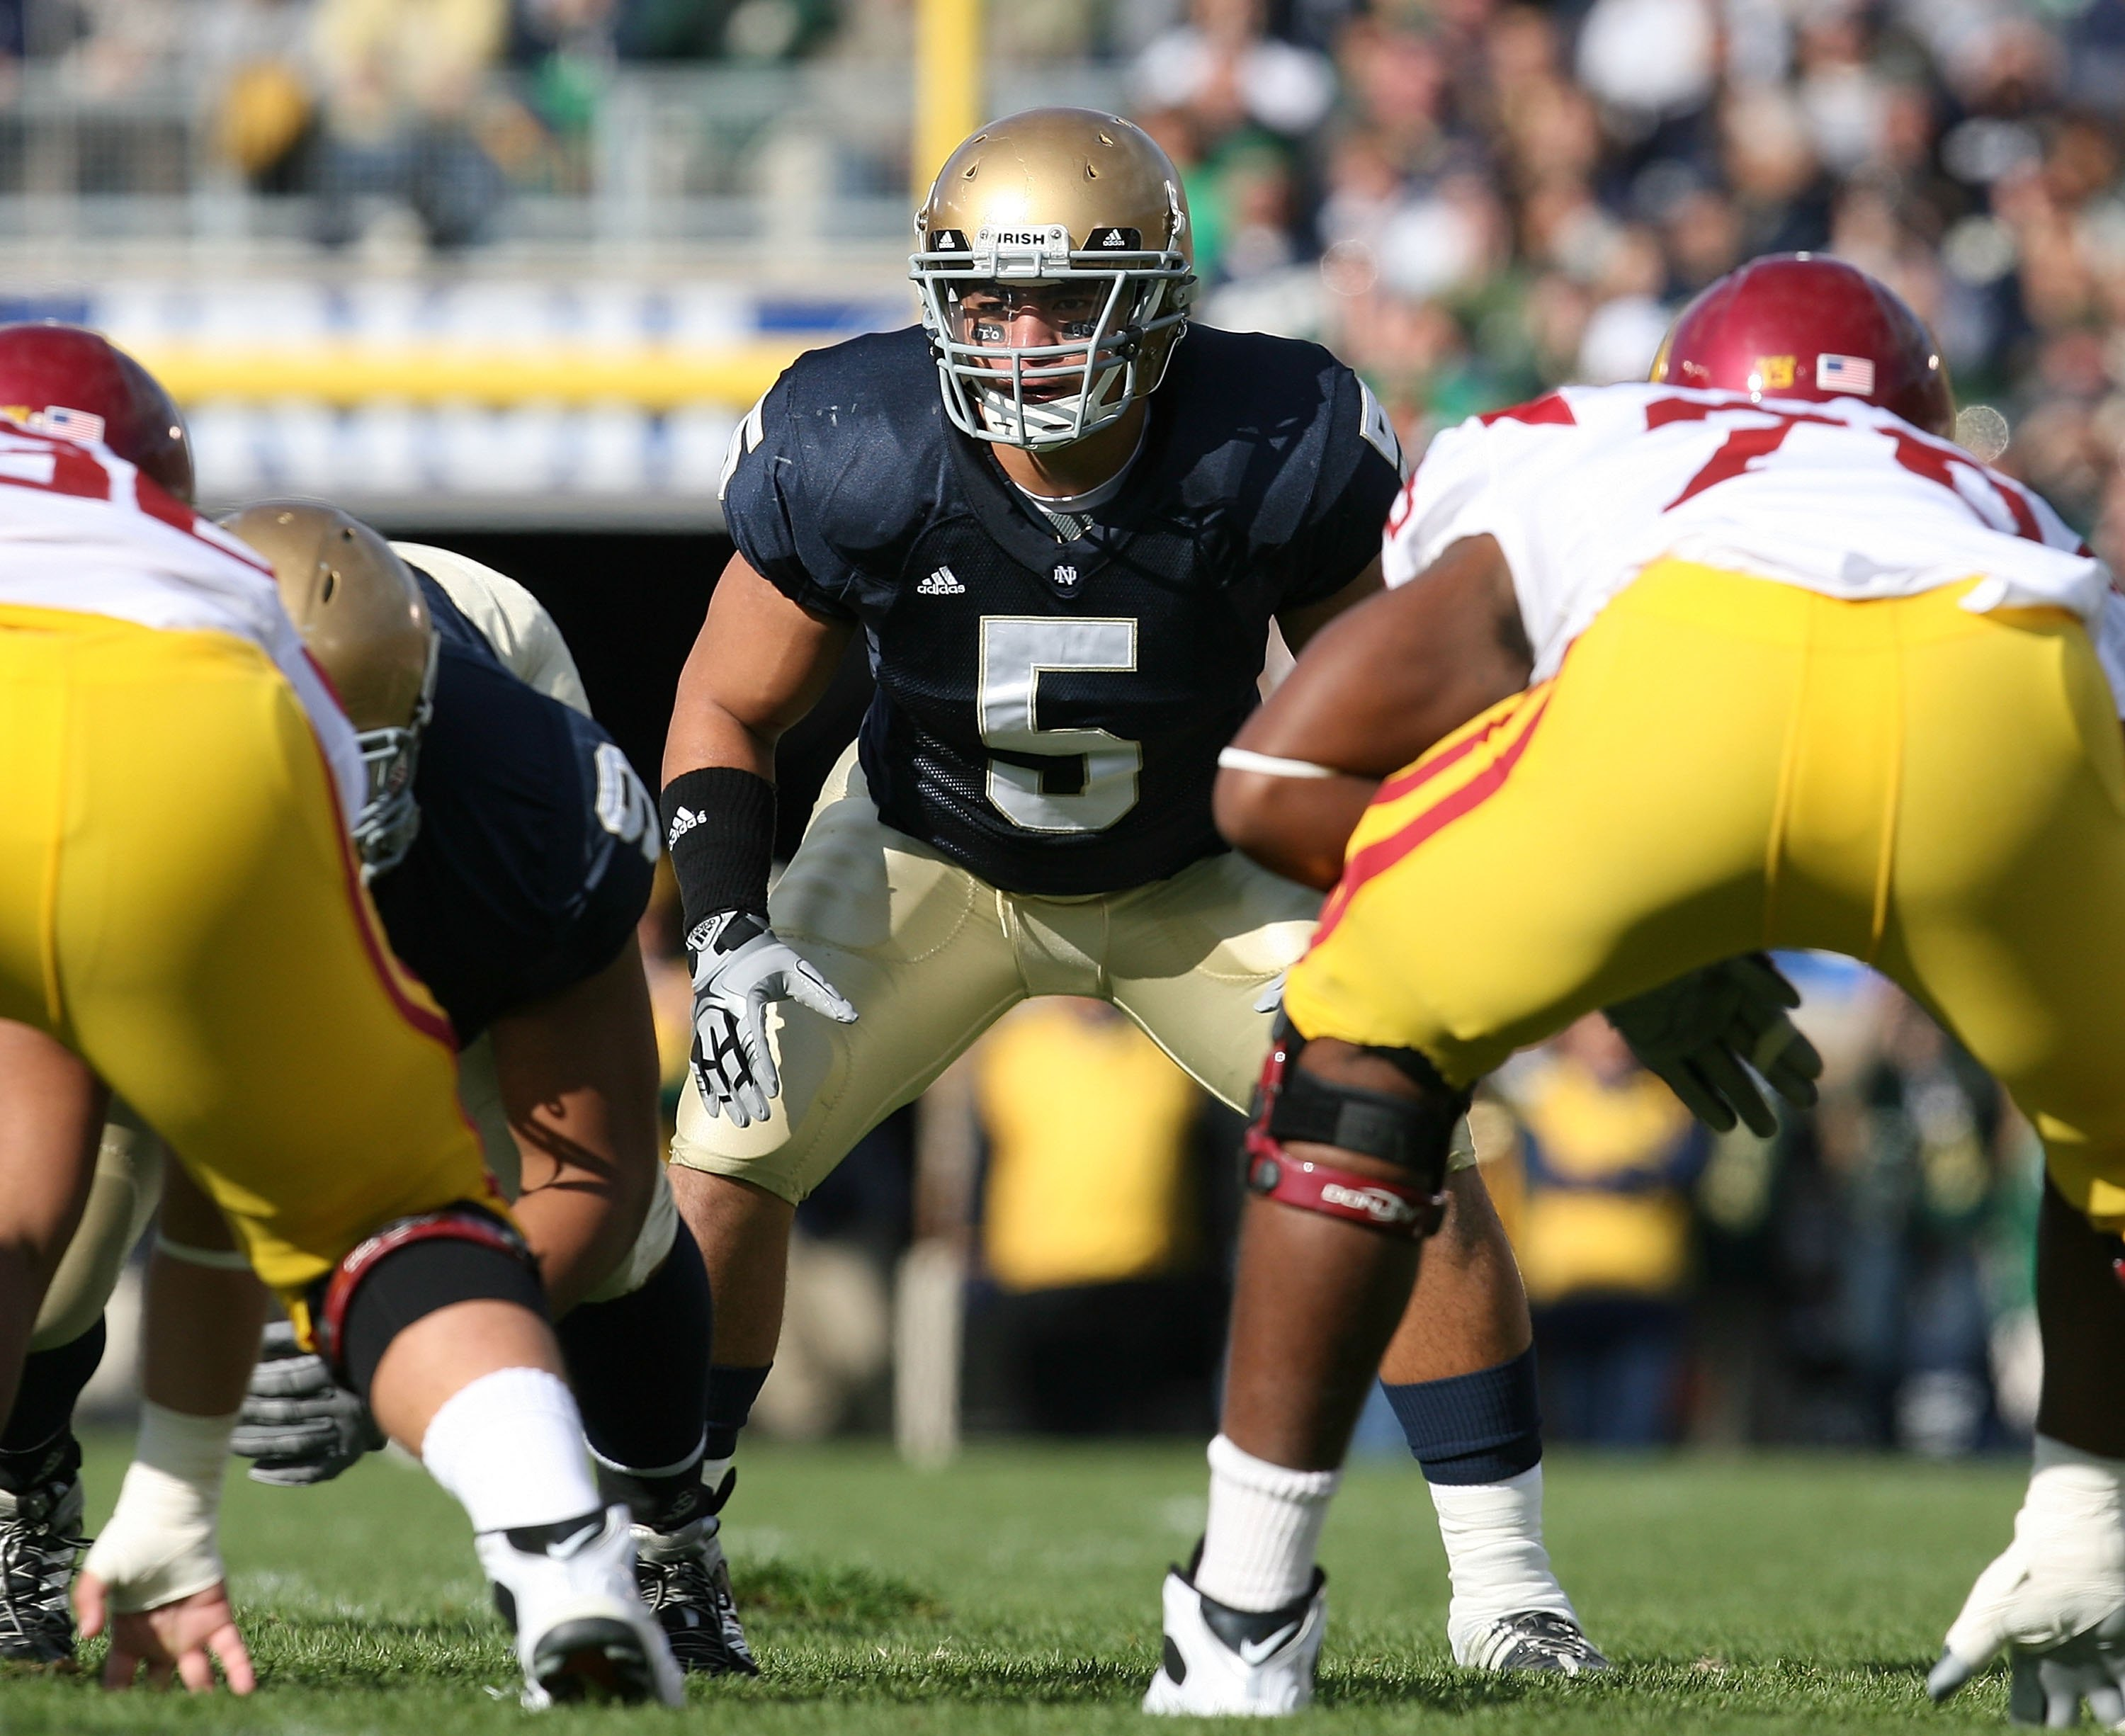 Notre Dame's Manti Te'o is Lott IMPACT Player of the Week ...